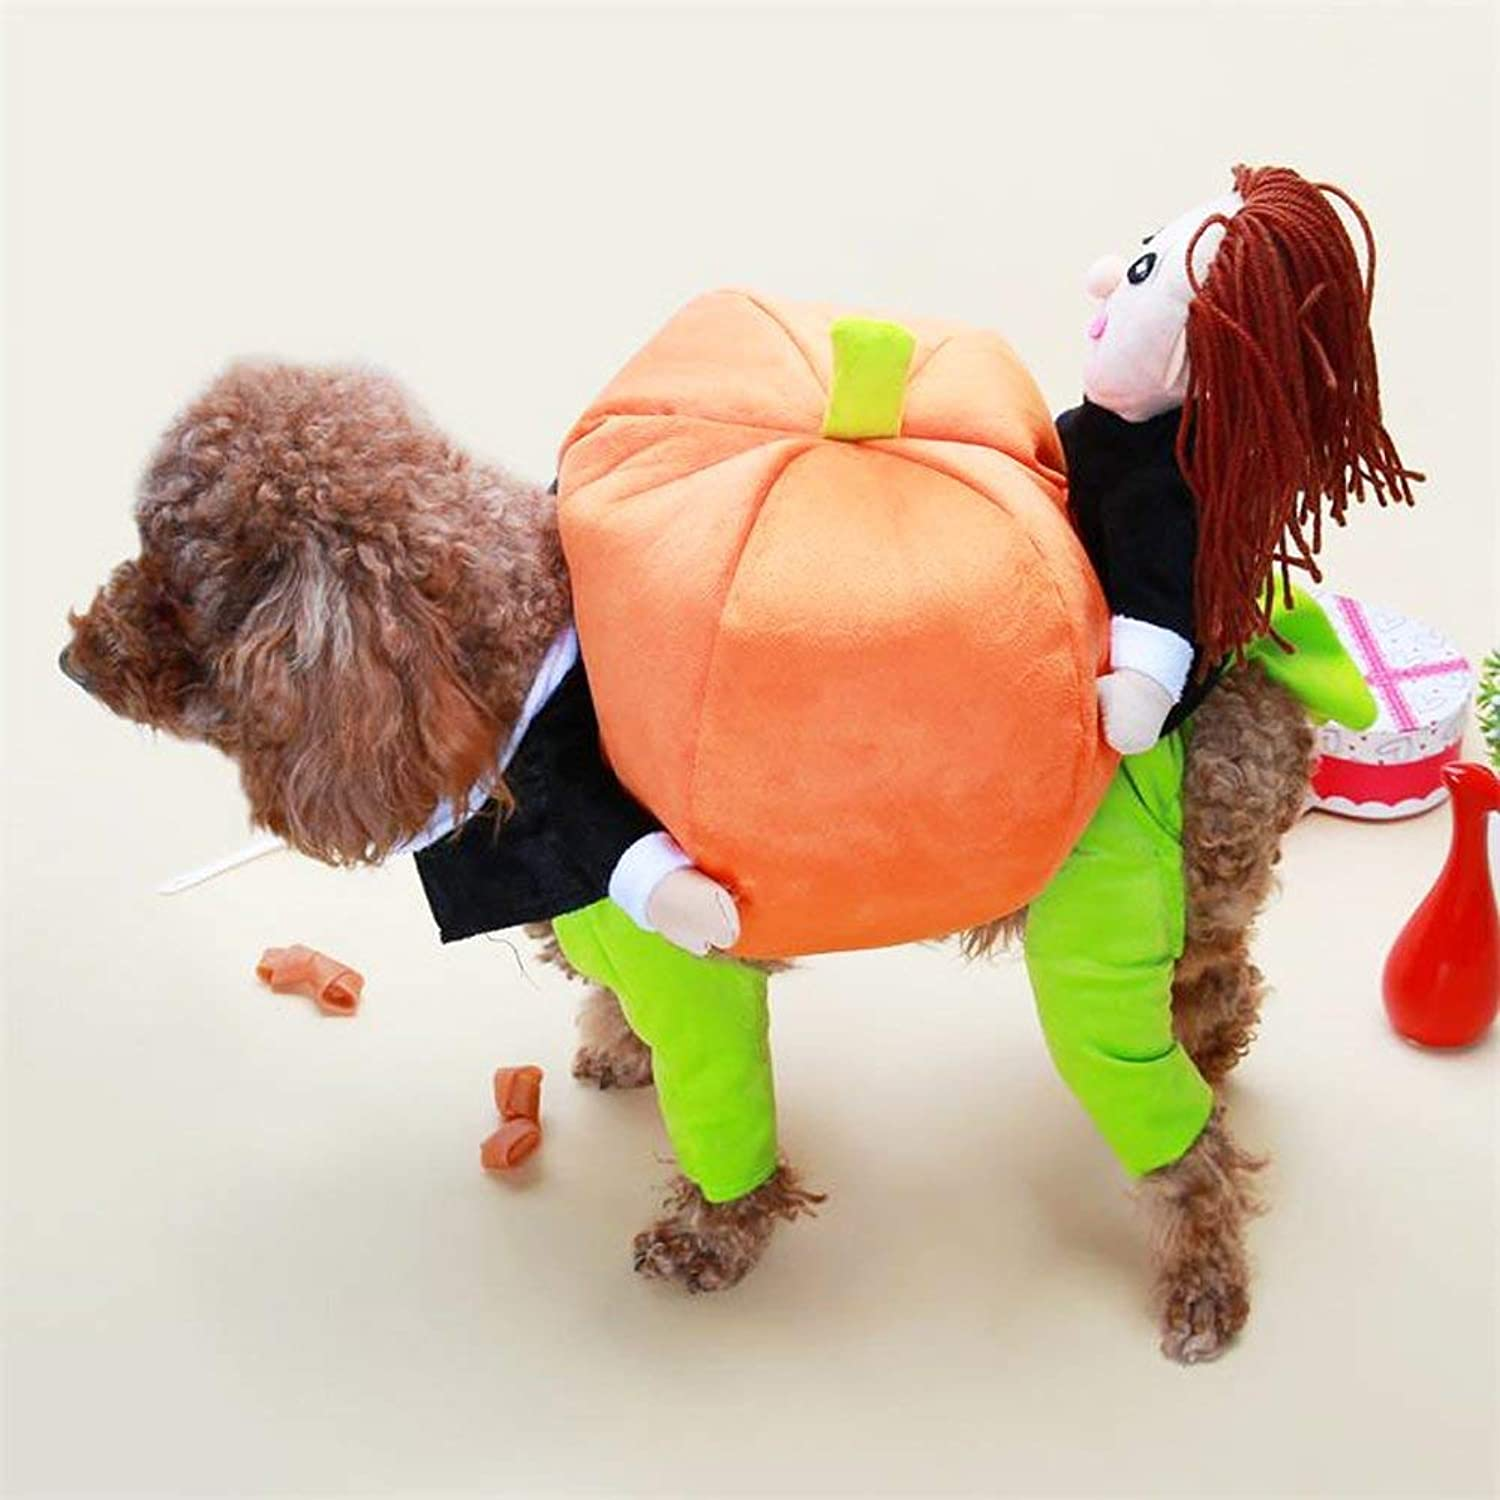 blueeSpace Pet Costume Dog Pumpkin Pets Suit Pets Clothing for Small Dogs and Cats Halloween Christmas Theme Party Costumes, L